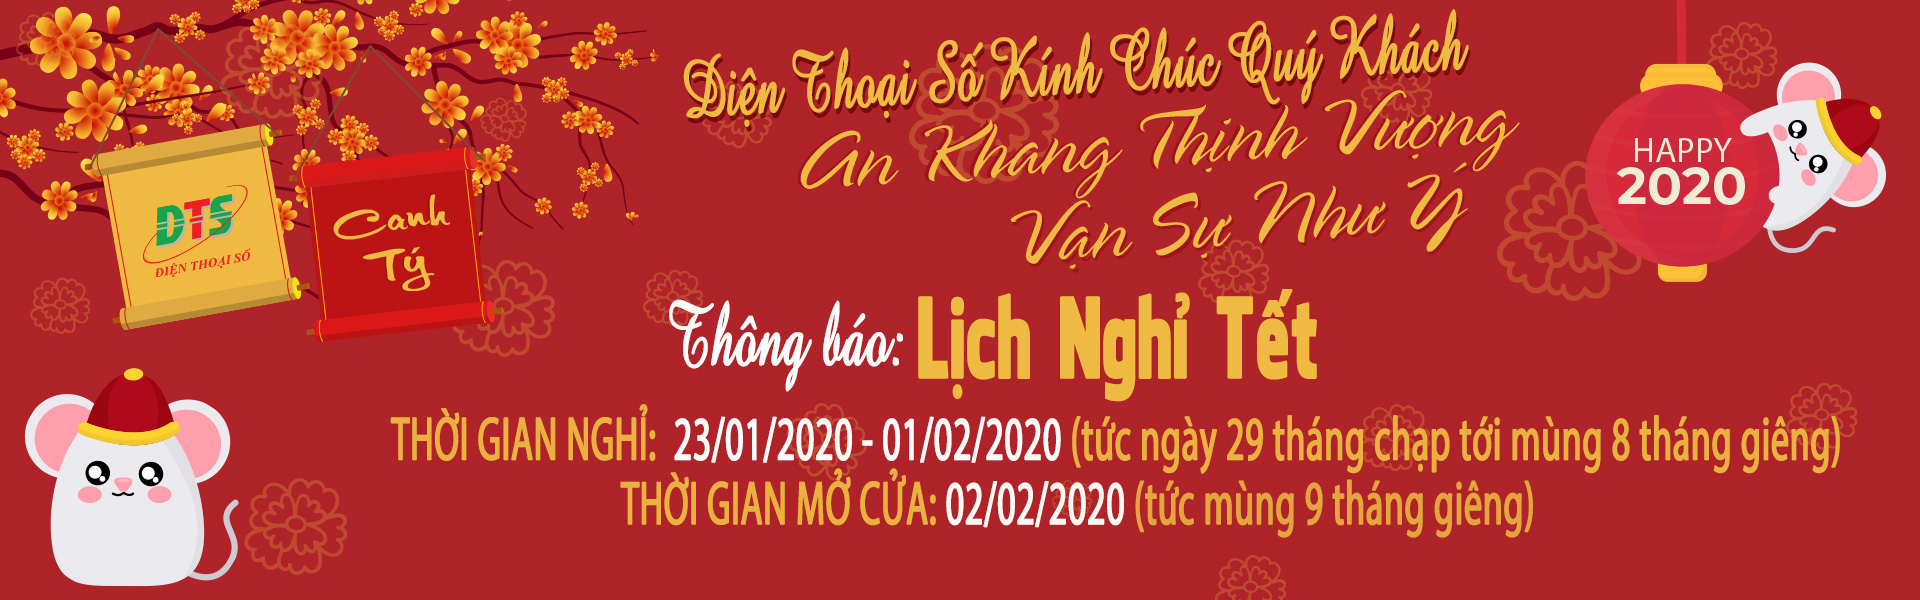 Poster Tết 2020 Canh Tý Website Final